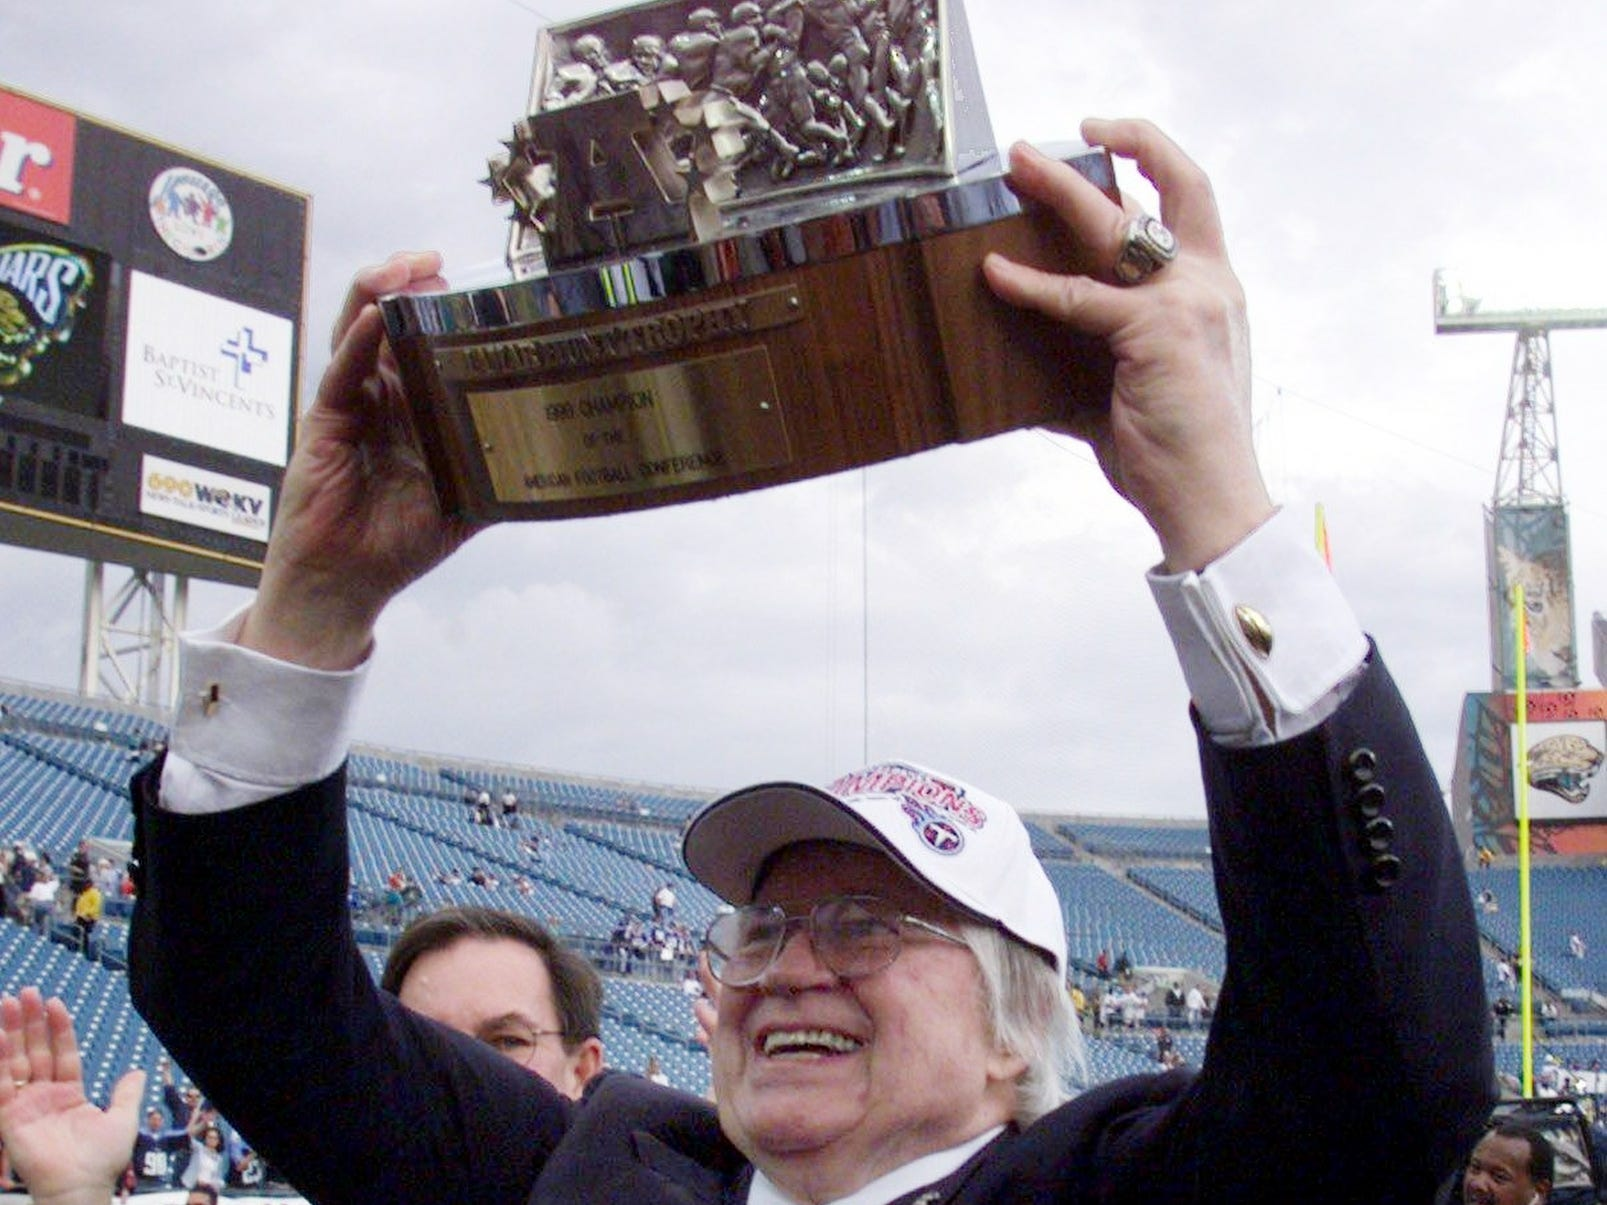 Tennessee Titans owner Bud Adams raises the AFC championship trophy to the fans at Alltel Stadium after beating the Jacksonville Jaguars 33-14 Jan. 23, 2000.